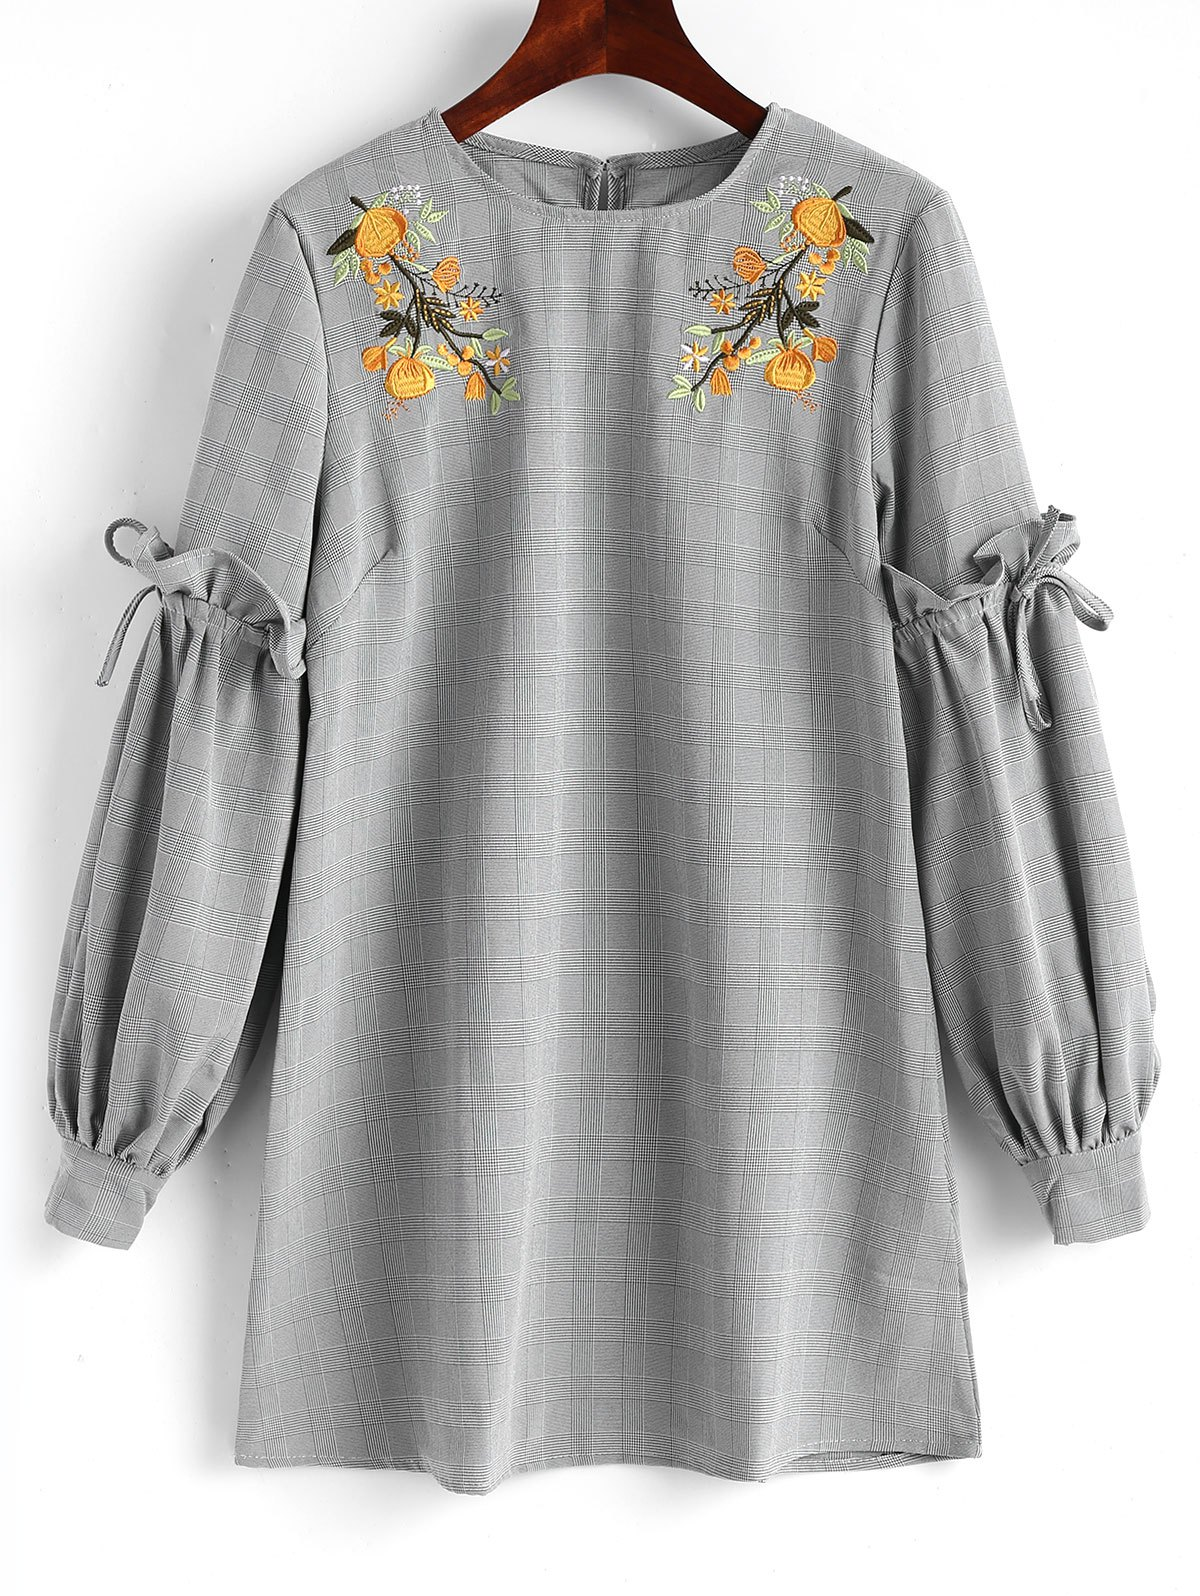 Online Checked Floral Embroidered Mini Dress